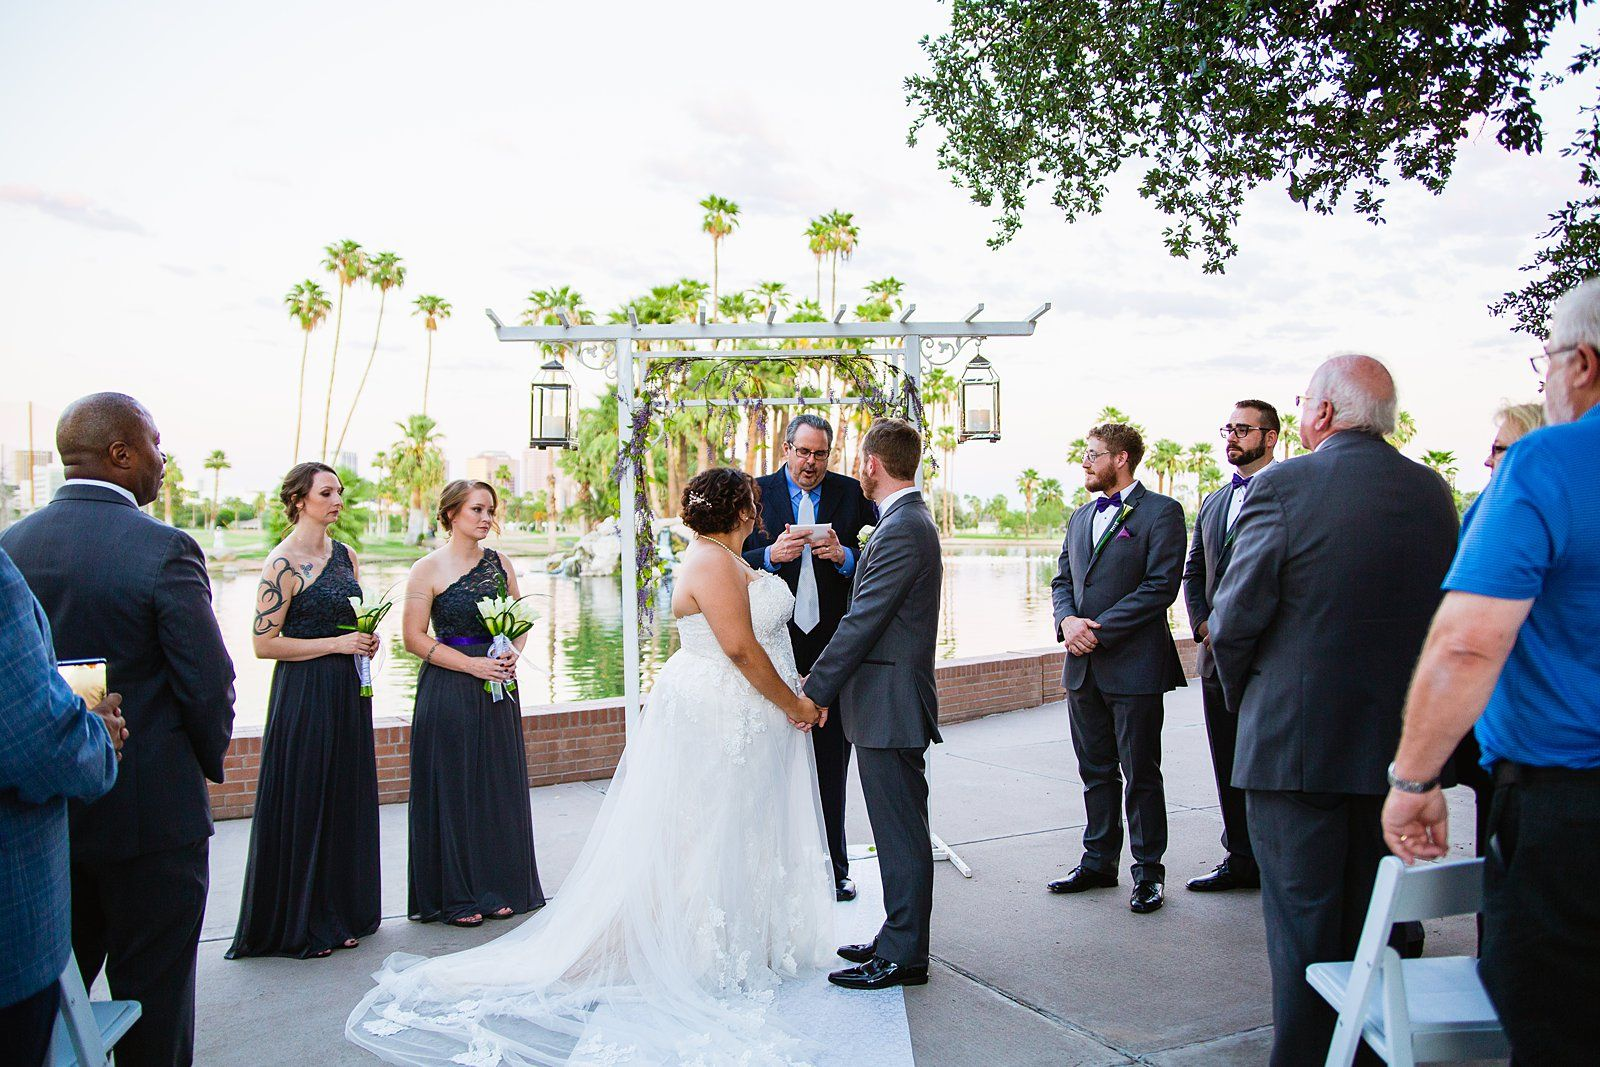 Encanto Park Wedding Phoenix Arizona Photographer Intimate Outdoor Small Diy